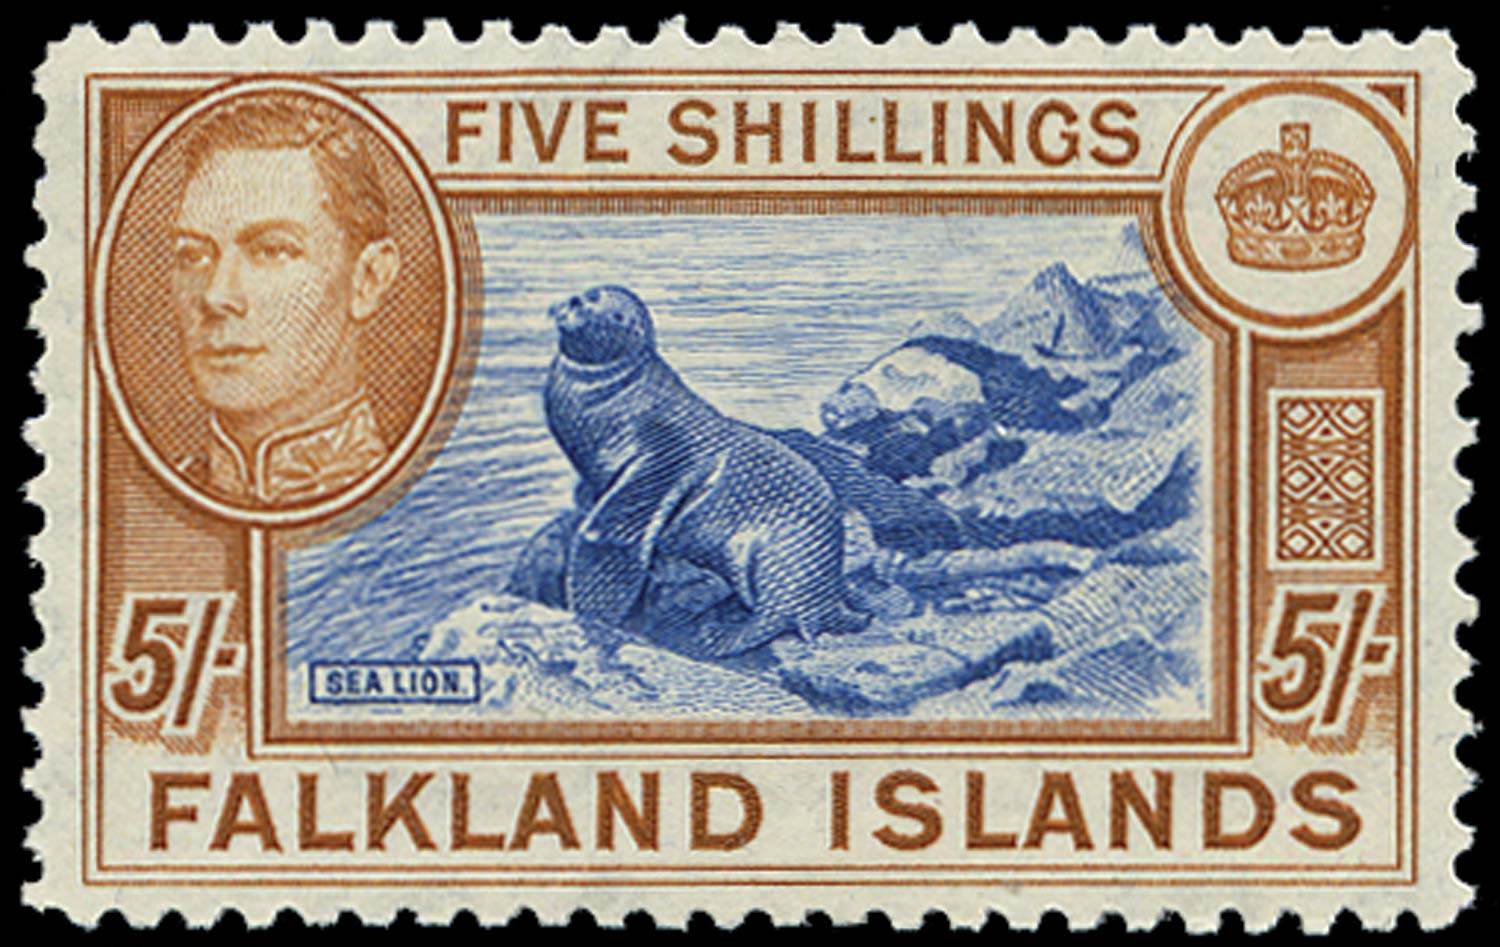 FALKLAND ISLANDS 1949  SG161d Mint